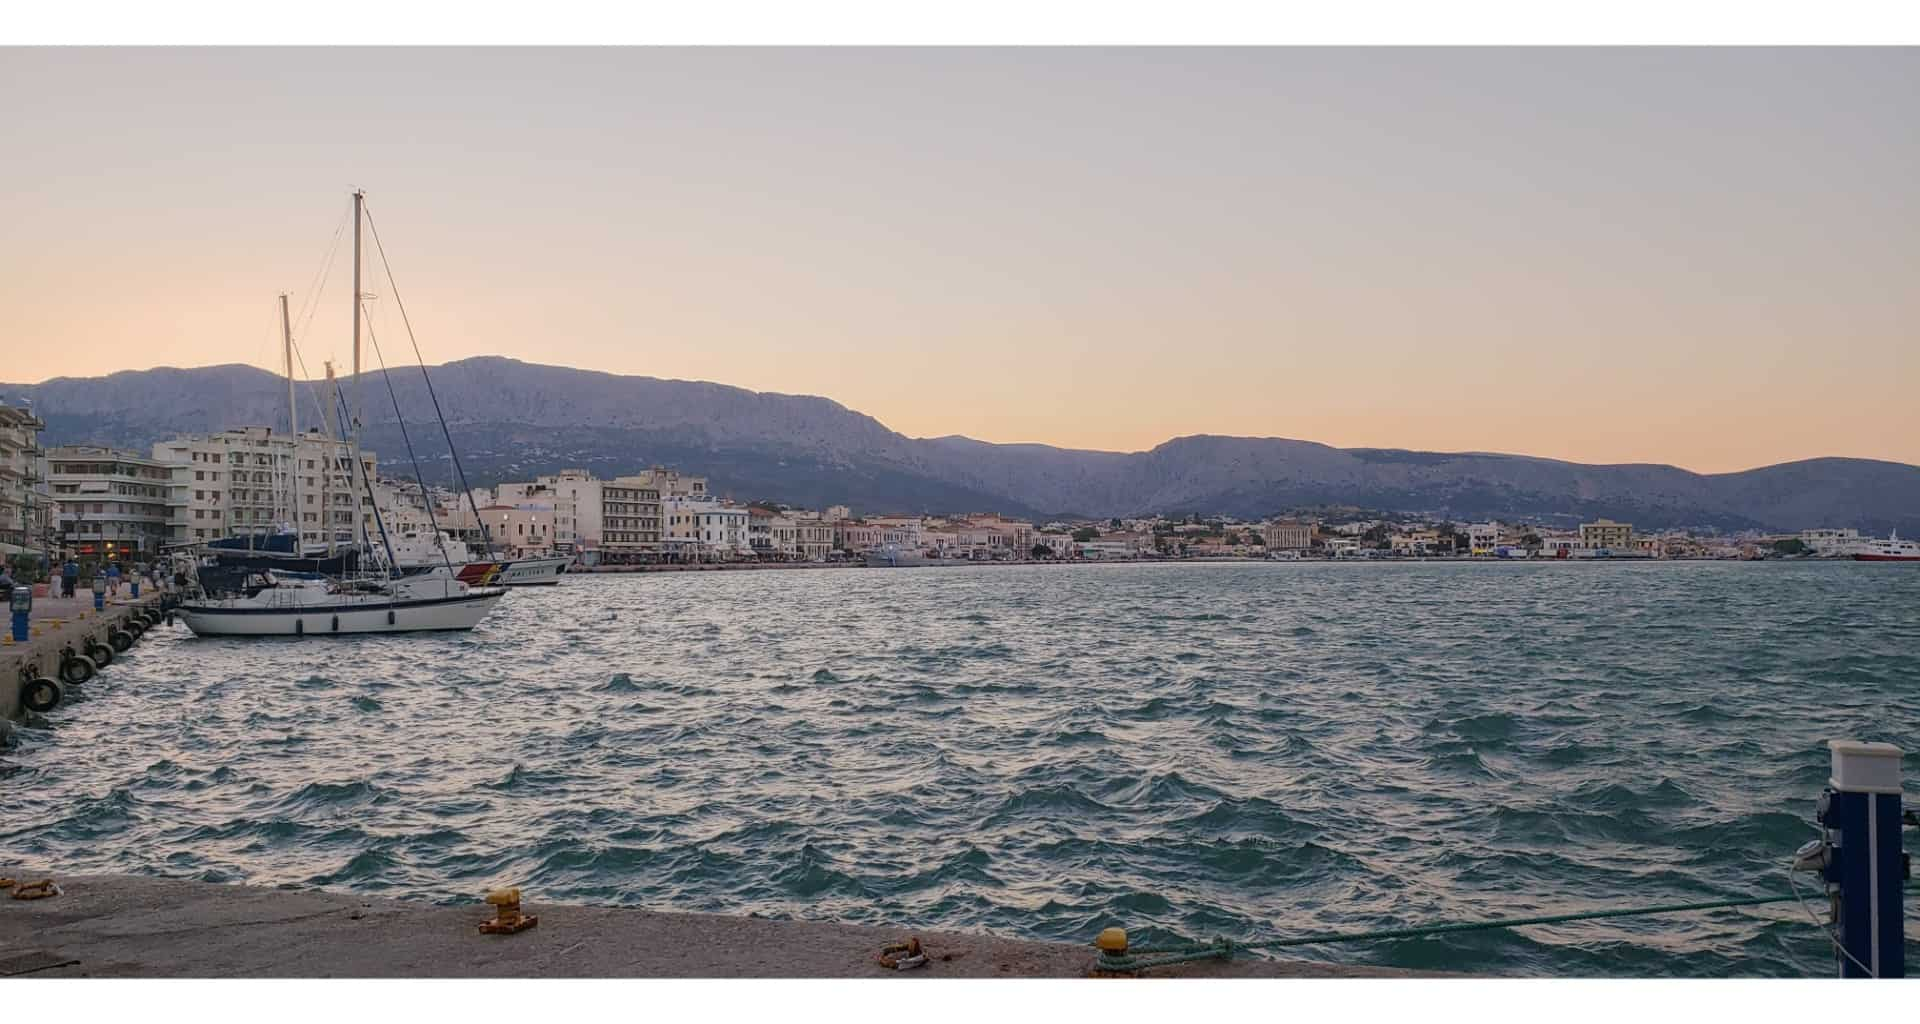 dusk at port in Chios island Greece